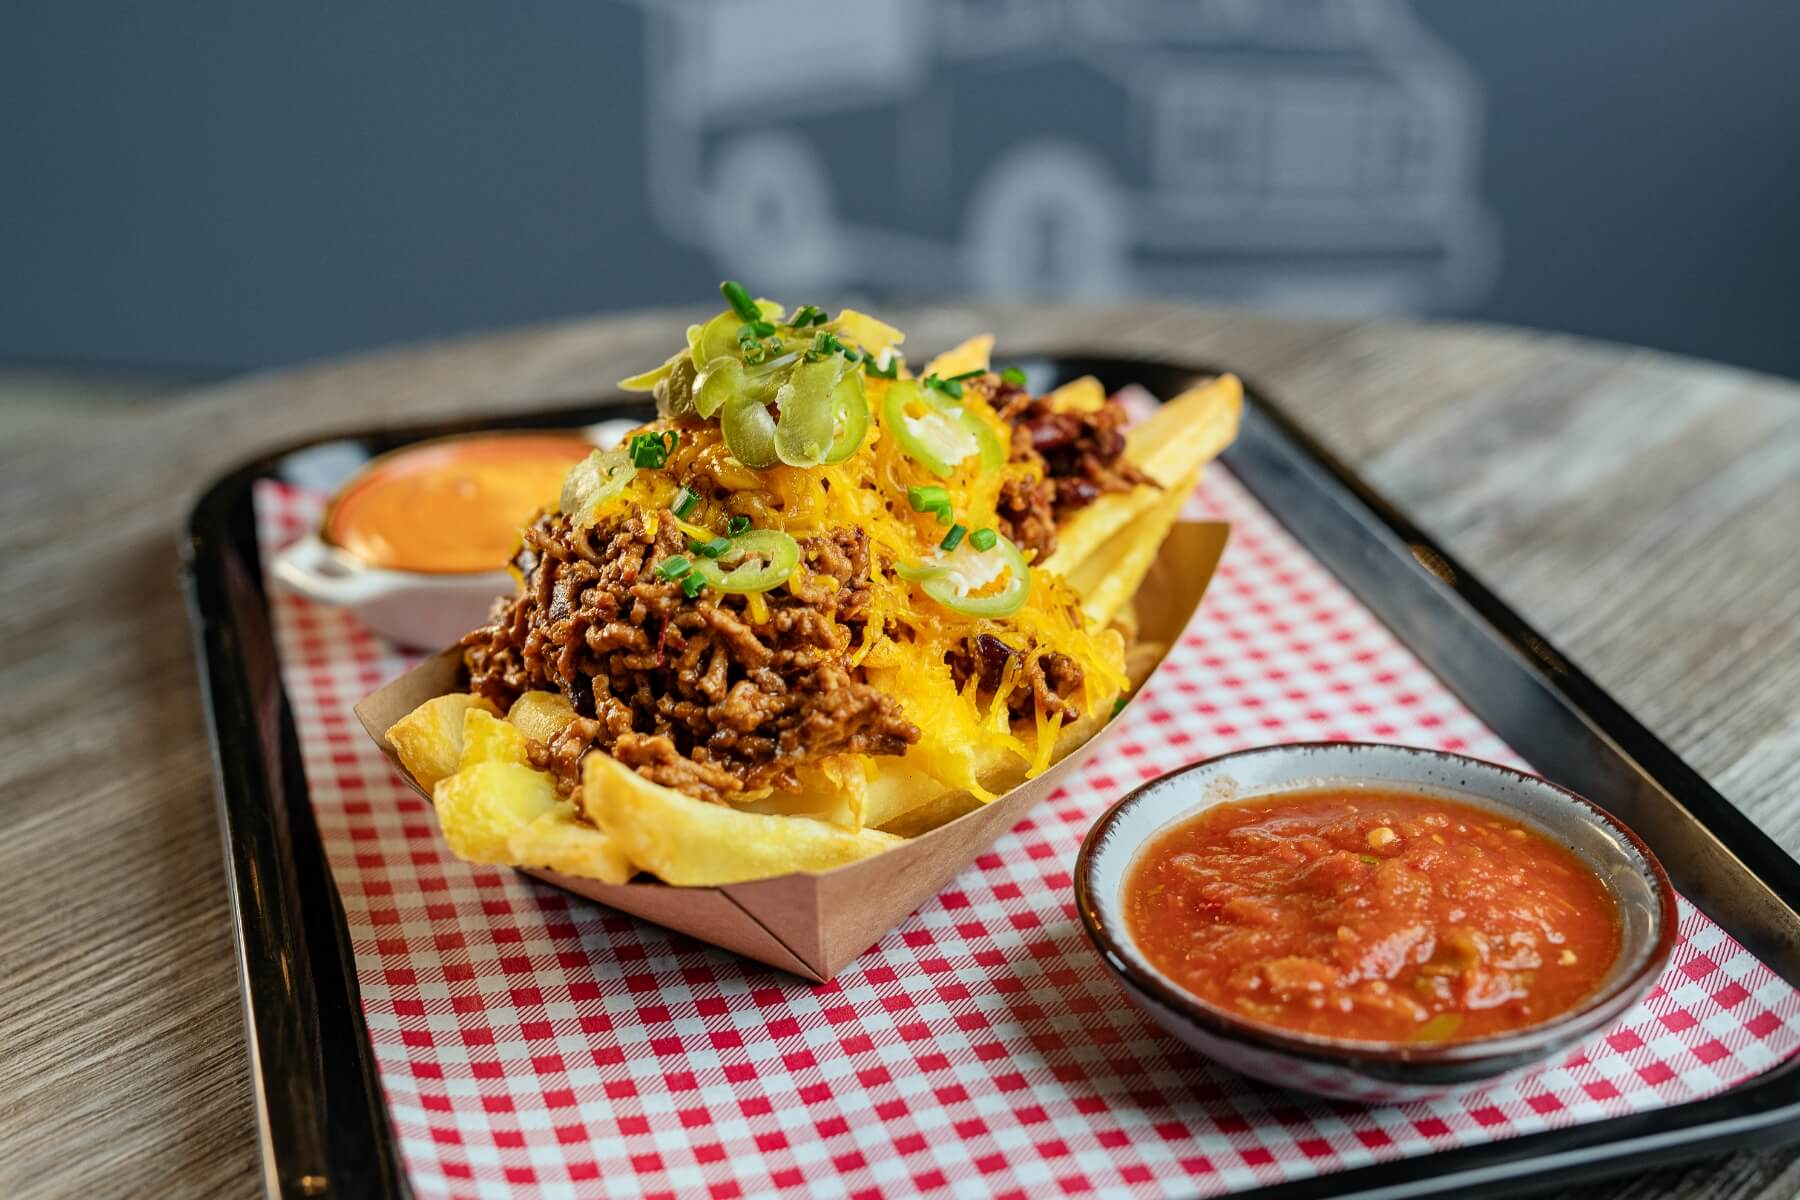 Lunchtruck Gallery: Fries